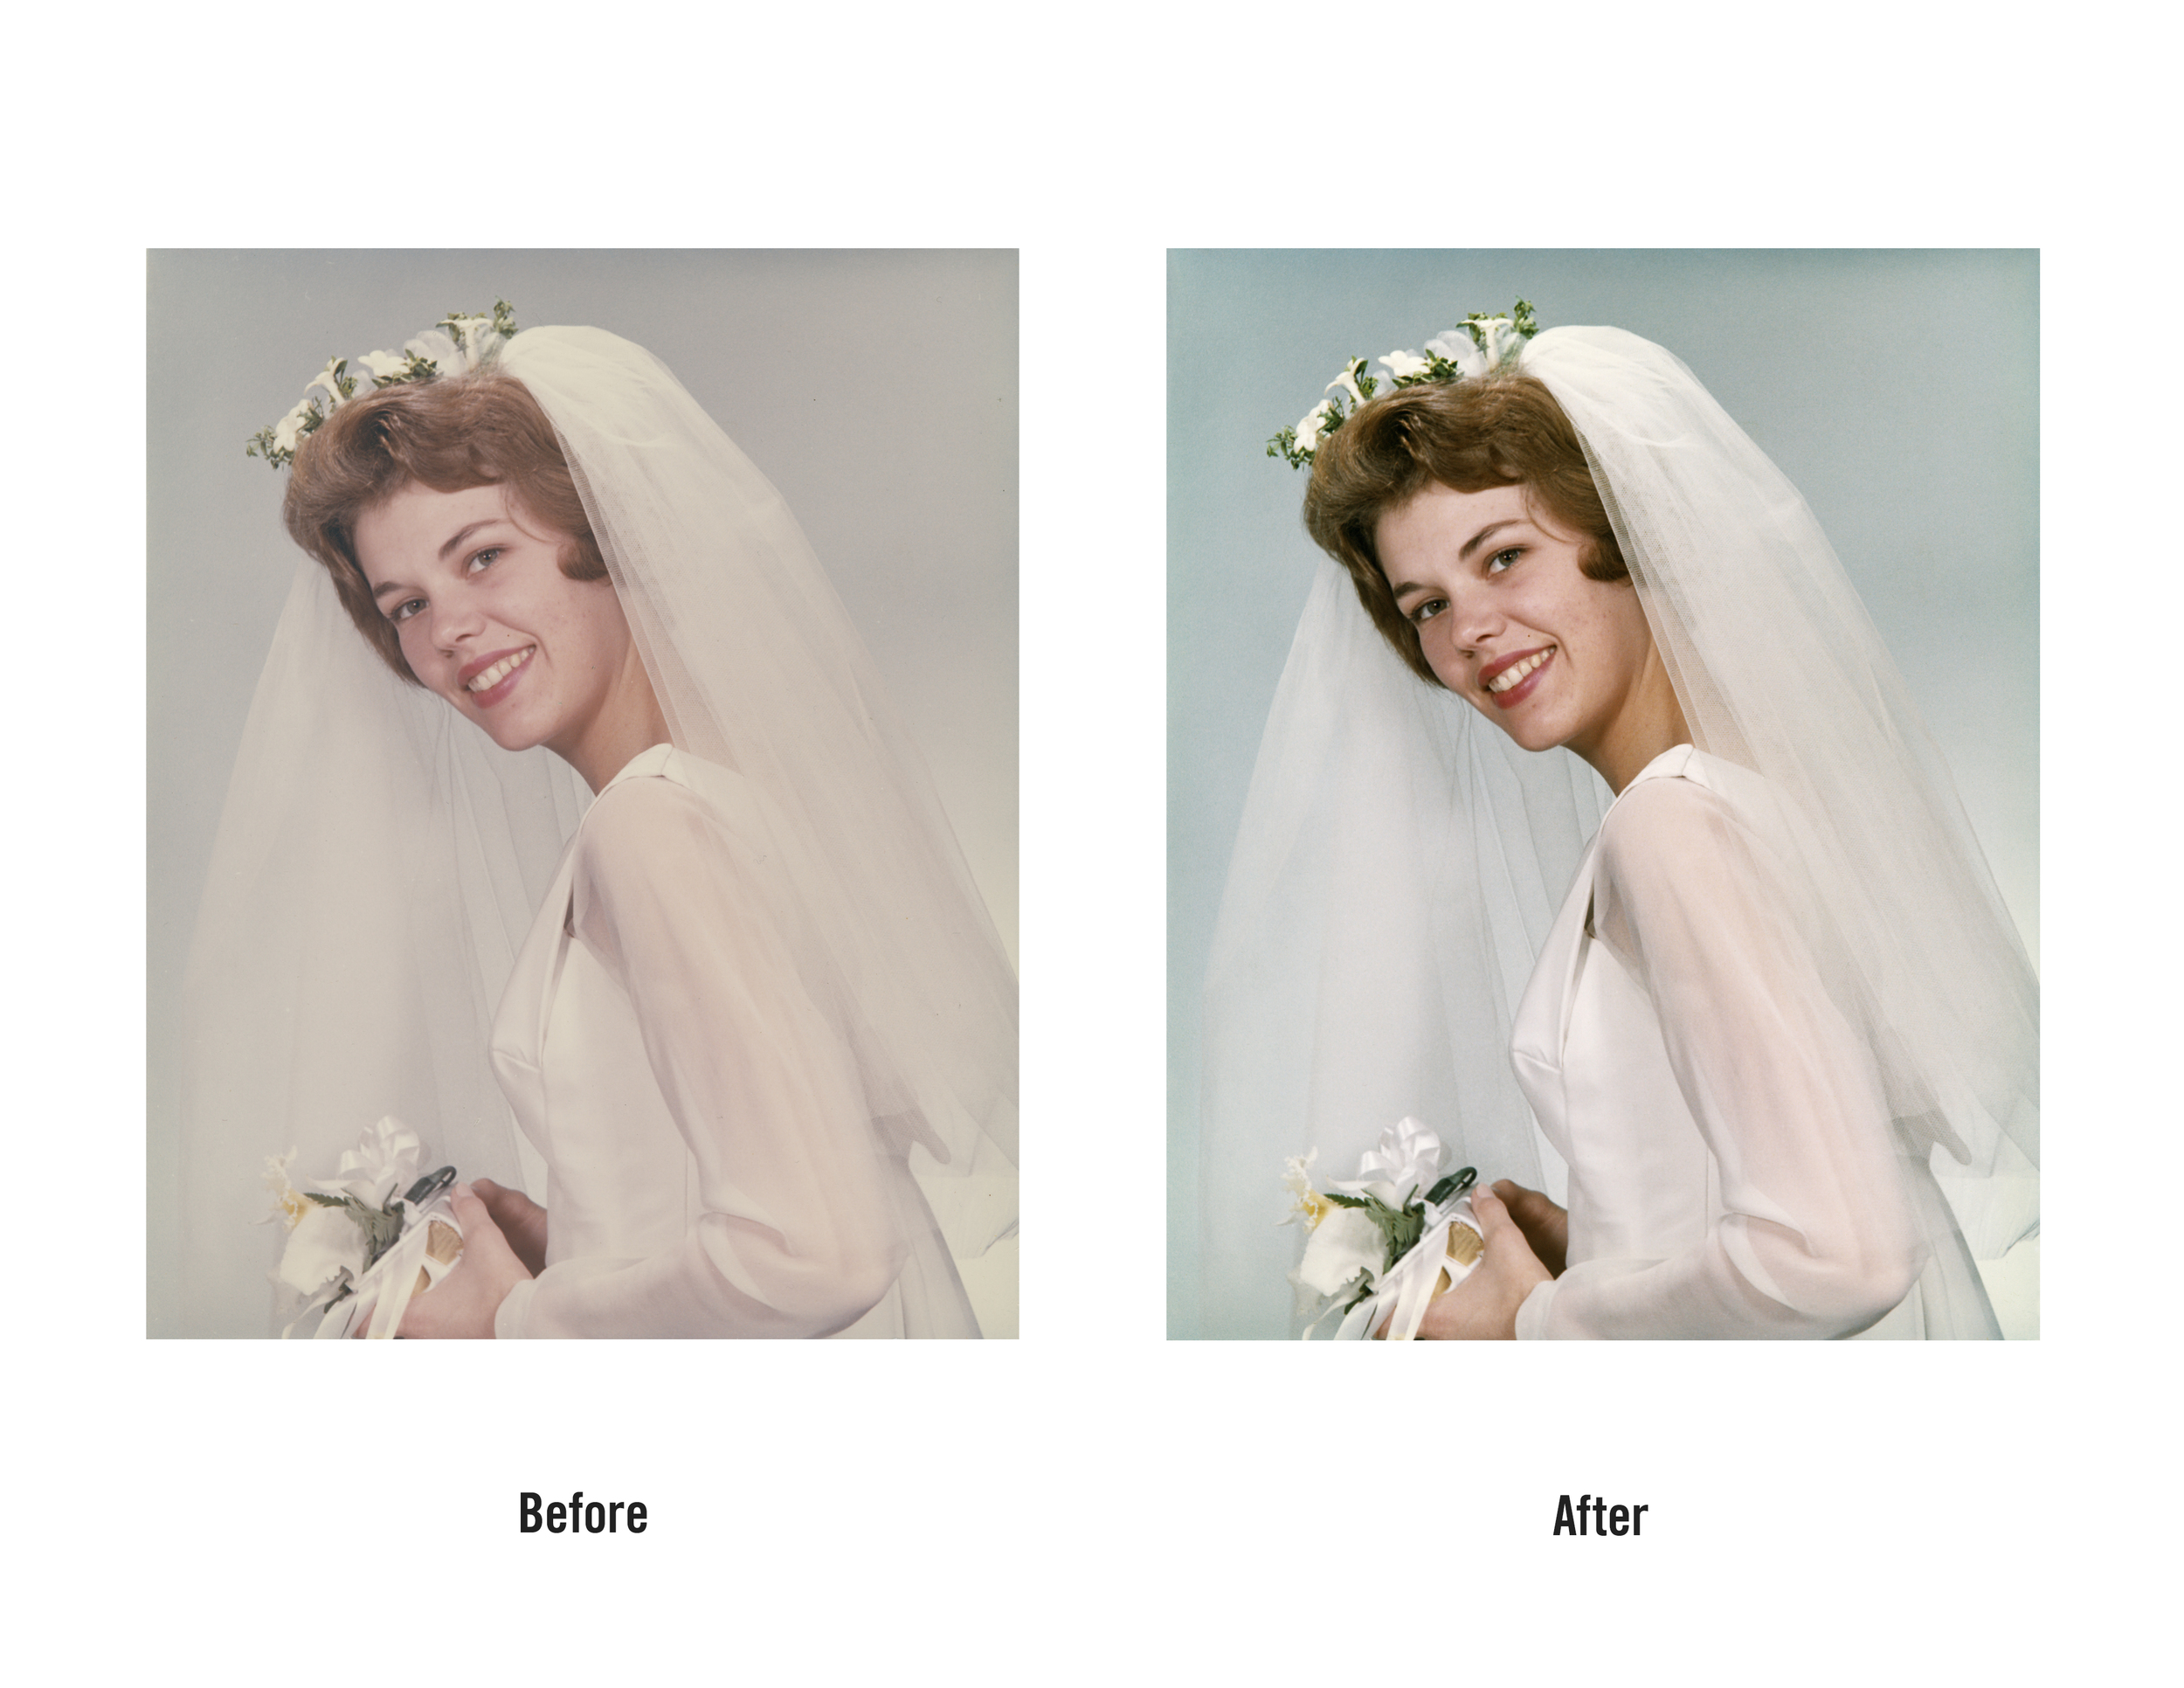 Before and After Book Template_Hunt_Katie_Mother_wedding.jpg